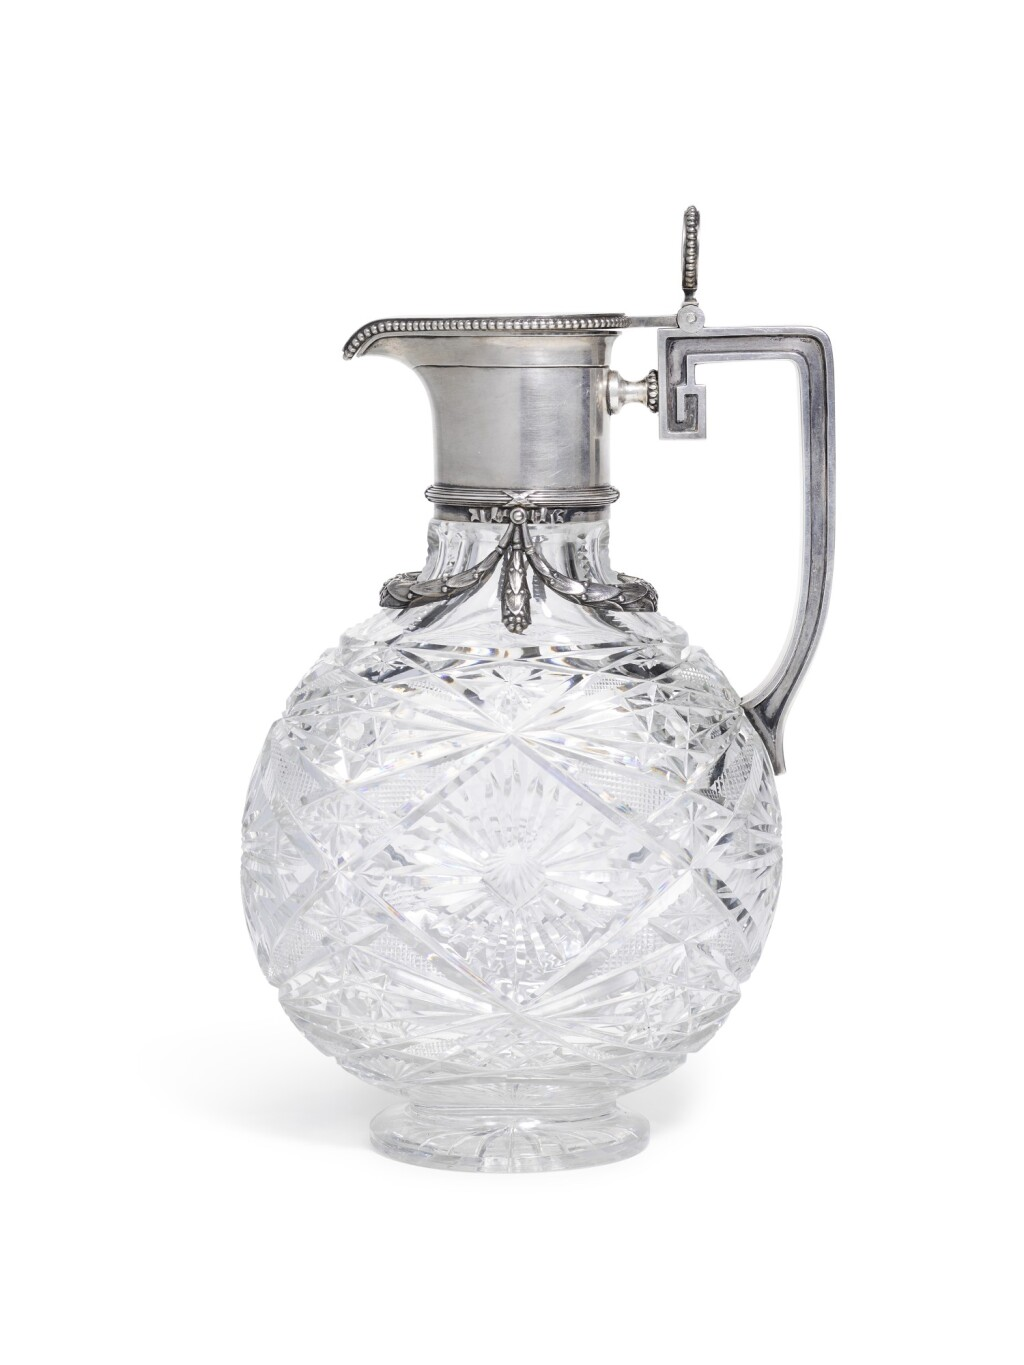 A FABERGÉ SILVER-MOUNTED CUT-GLASS DECANTER, MOSCOW, 1908-1917